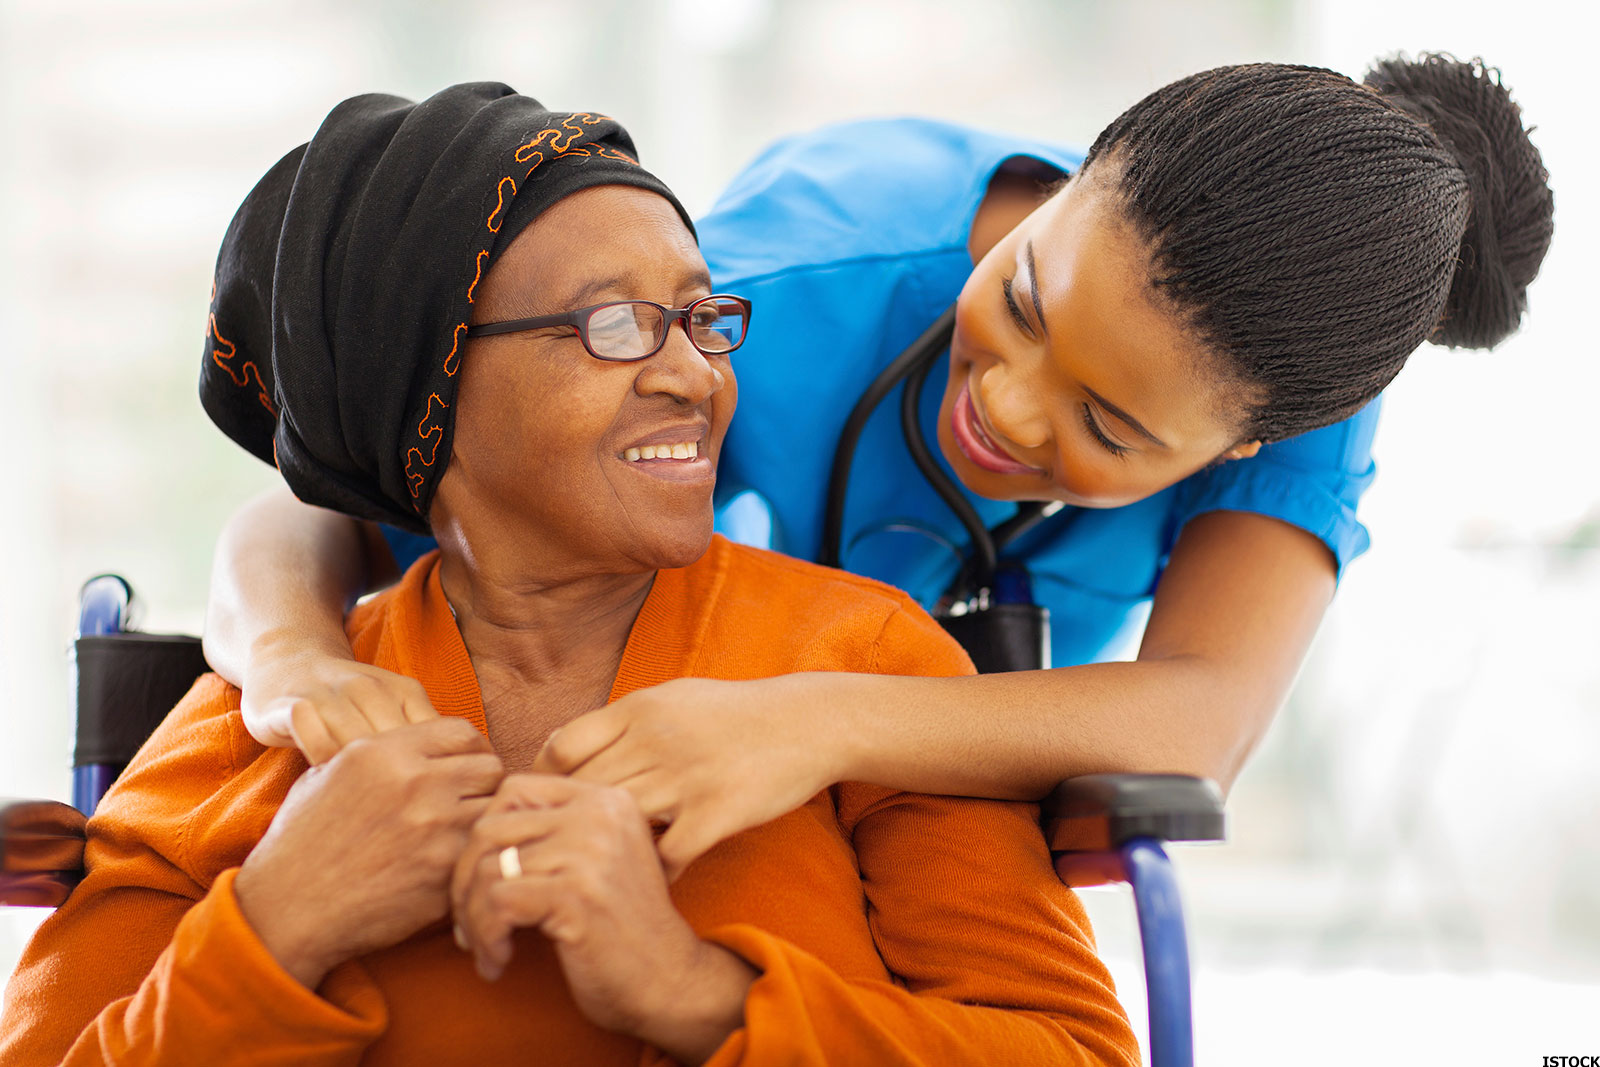 Why Long-Term Care Insurance Is a Bad Investment